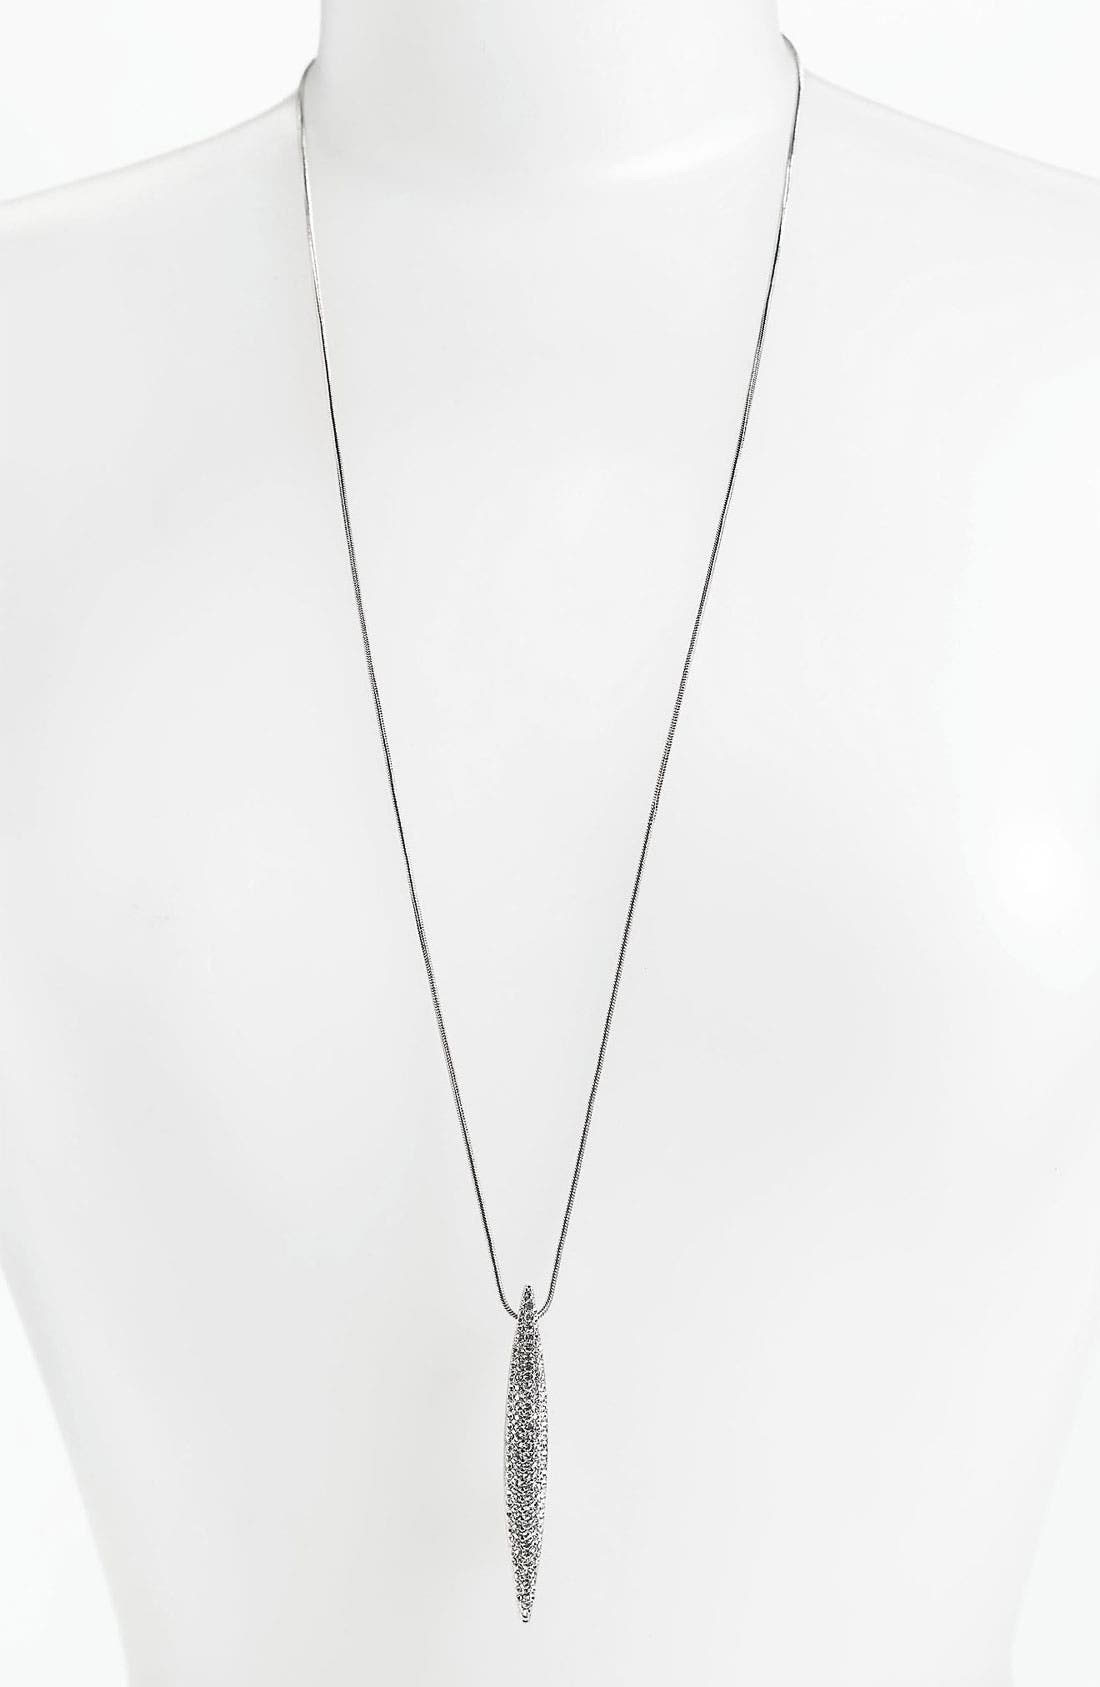 Main Image - Vince Camuto Spear Pendant Necklace